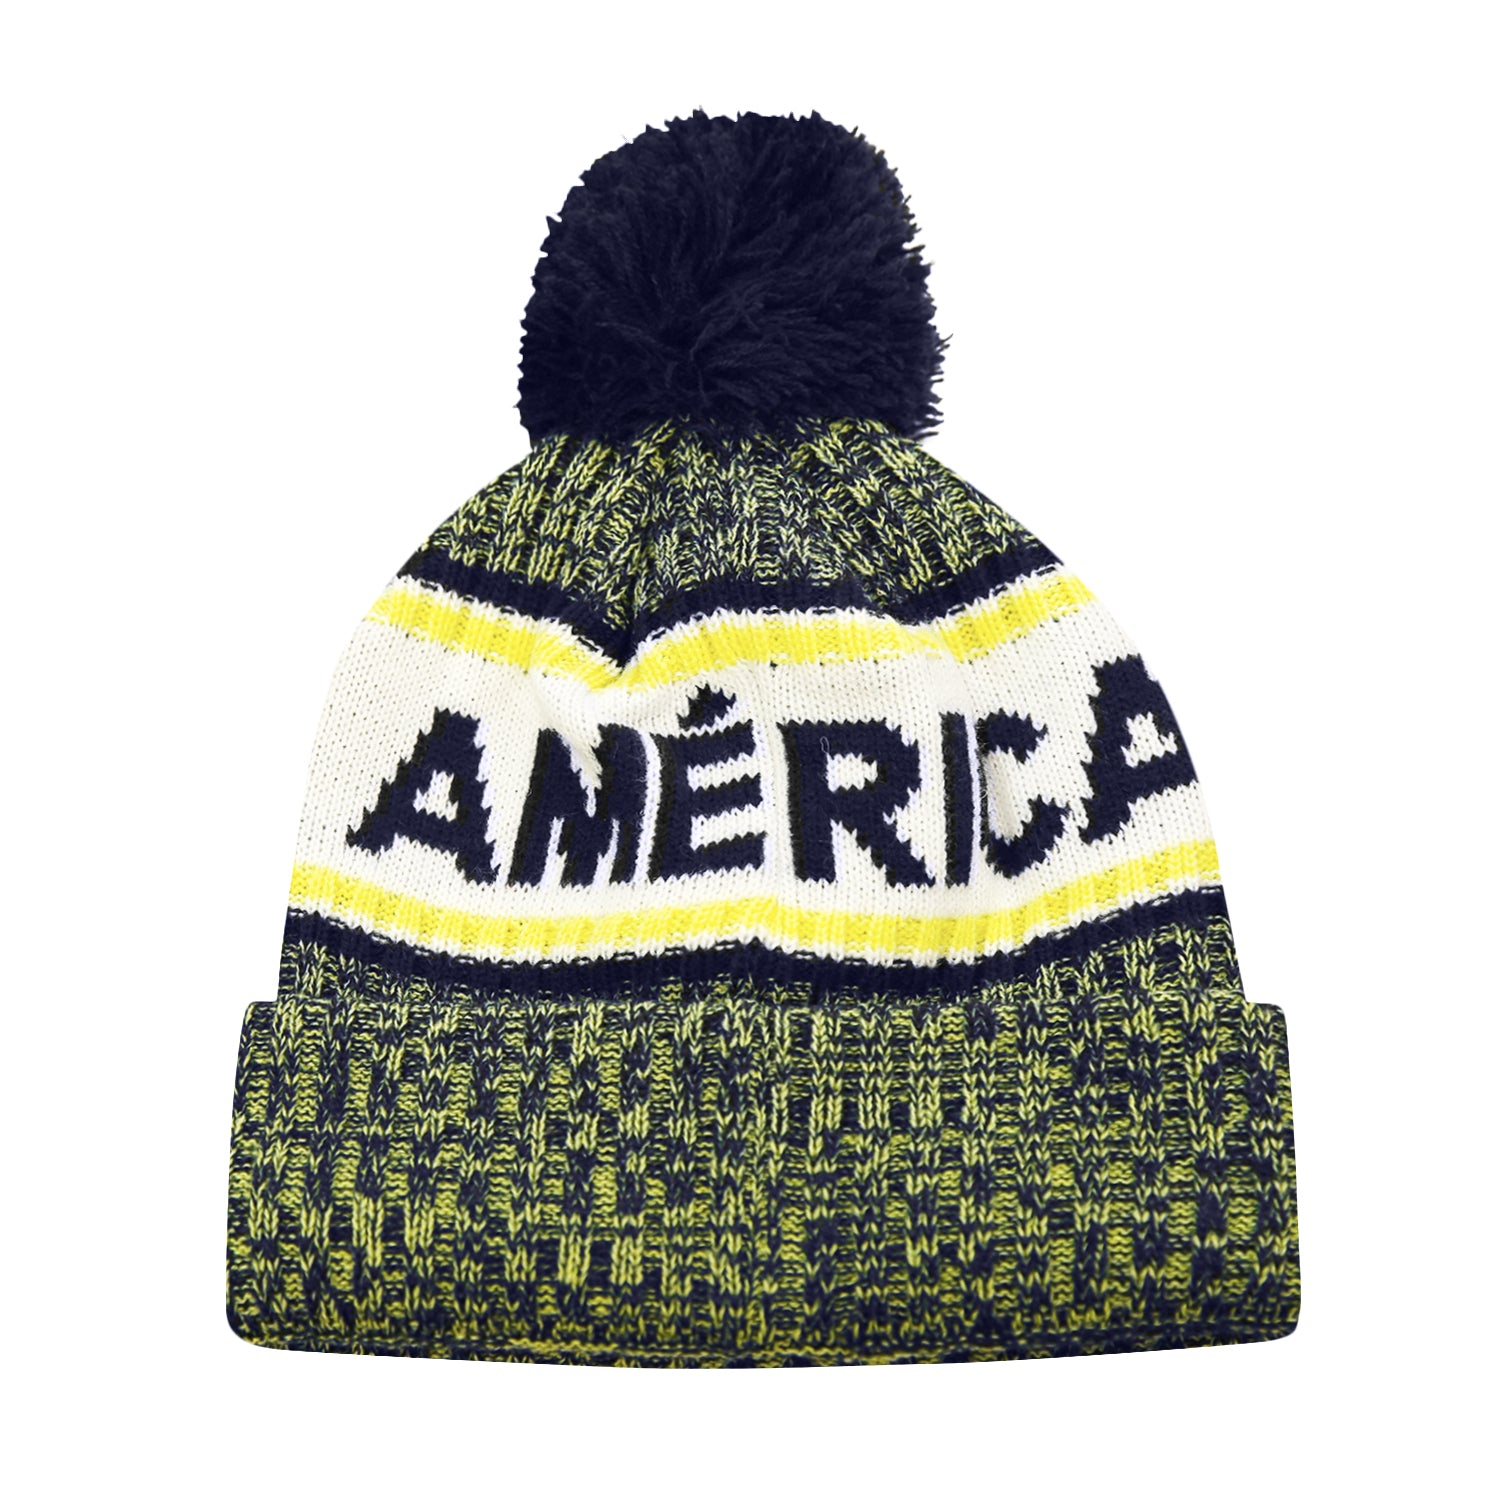 Club América Crowned Pom Pom Beanie by Icon Sports